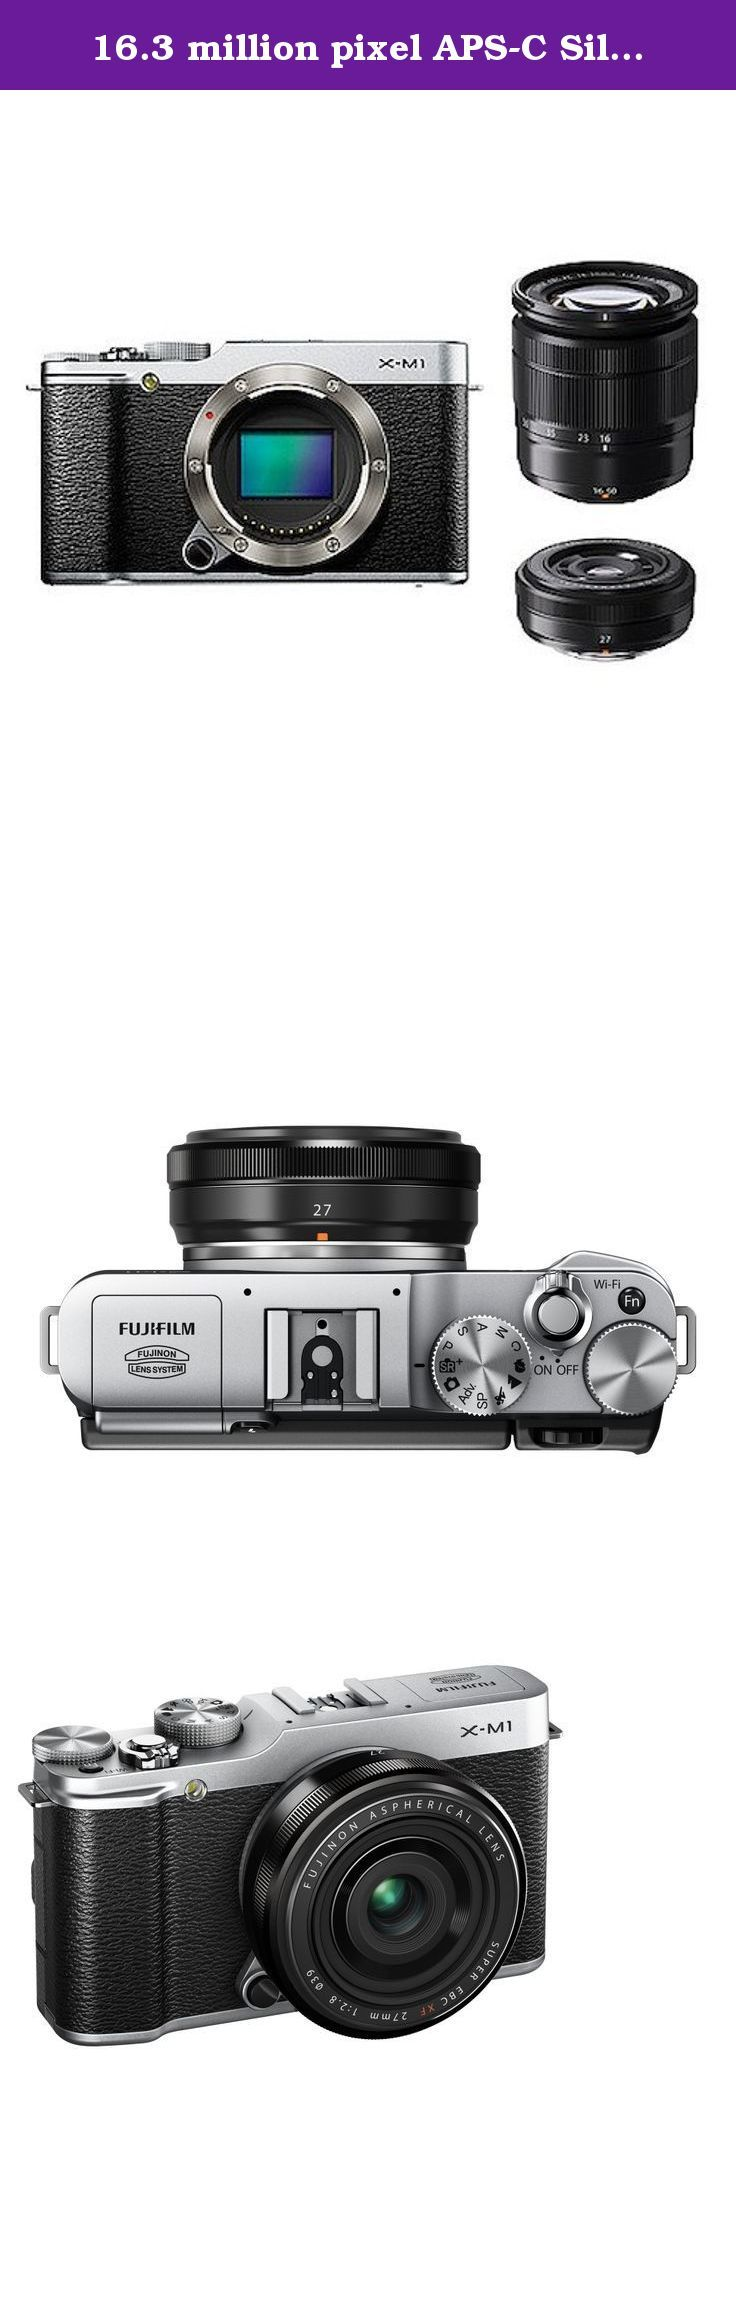 "16.3 million pixel APS-C Silver F X-M1S/1650/27KIT FUJIFILM digital single-lens camera X-M1 W lens kit zoom lens attached. The high image quality comparable to full-size machine with a compact body The ""X-Trans CMOS"" sensor deployment. I can enjoy high-quality shooting quickly and operable! Easy and intuitive one-handed. High-definition tilting LCD monitor, Wi-Fi communication, built-in flash and various functions installed in the body of the feel of a material that is high quality. Ideal..."